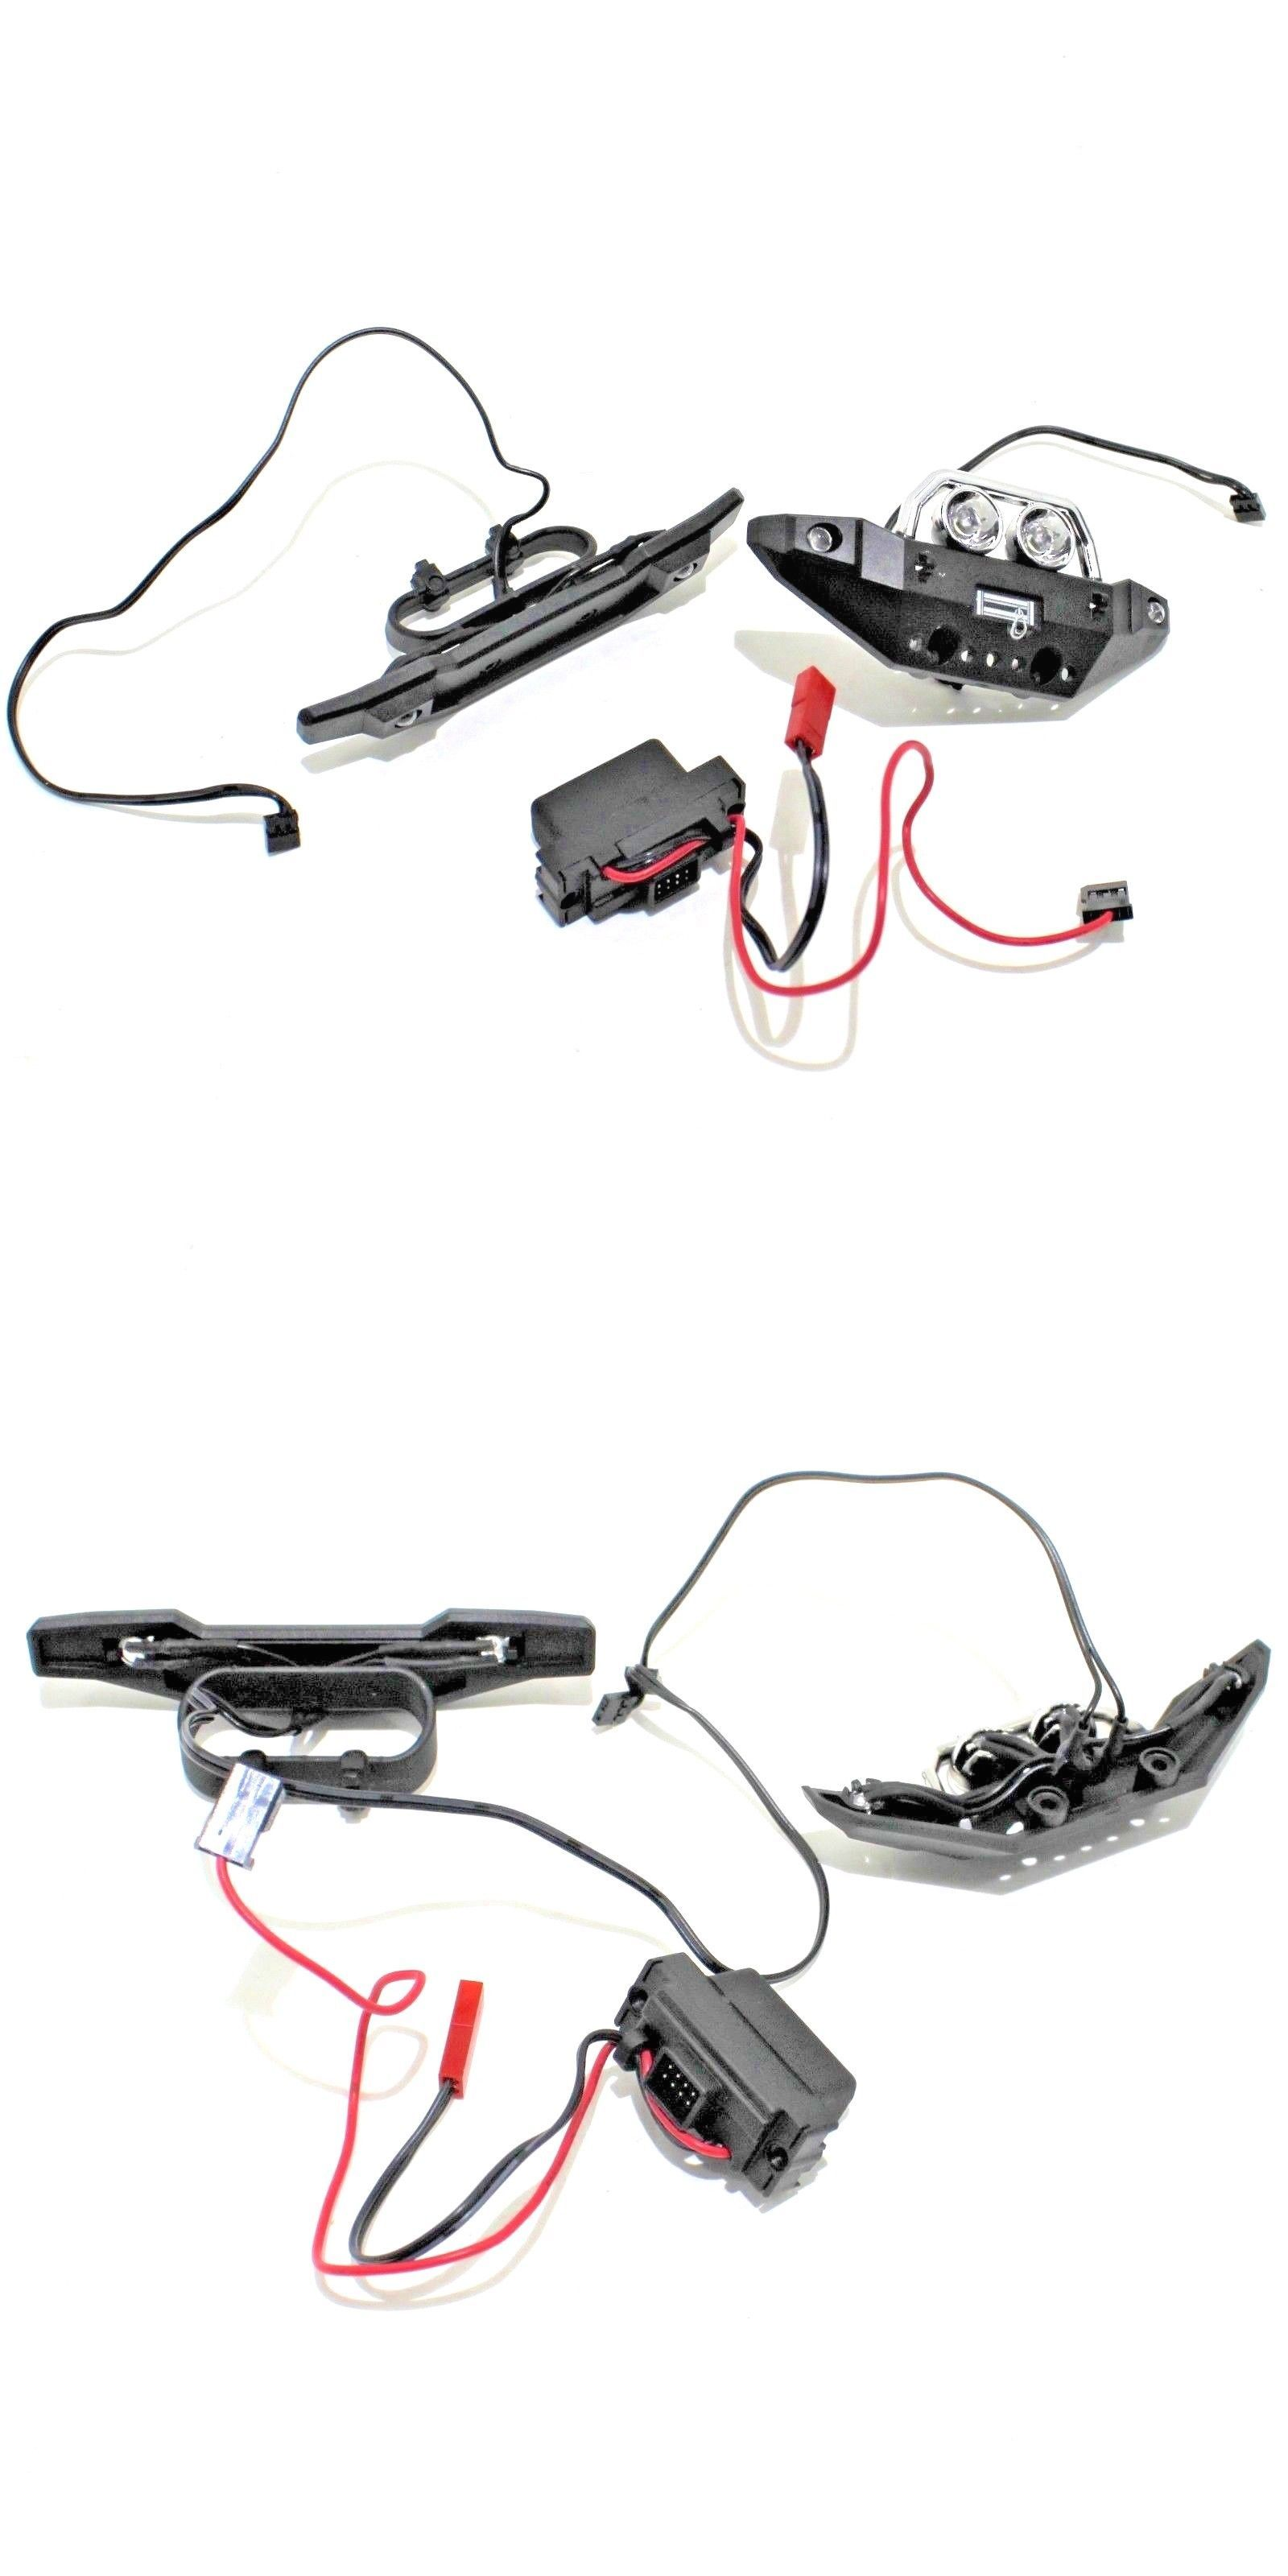 small resolution of lighting and lamps 182177 traxxas summit 1 16 front rear bumpers led lights wire harness mounts wiring box buy it now only 26 99 on ebay